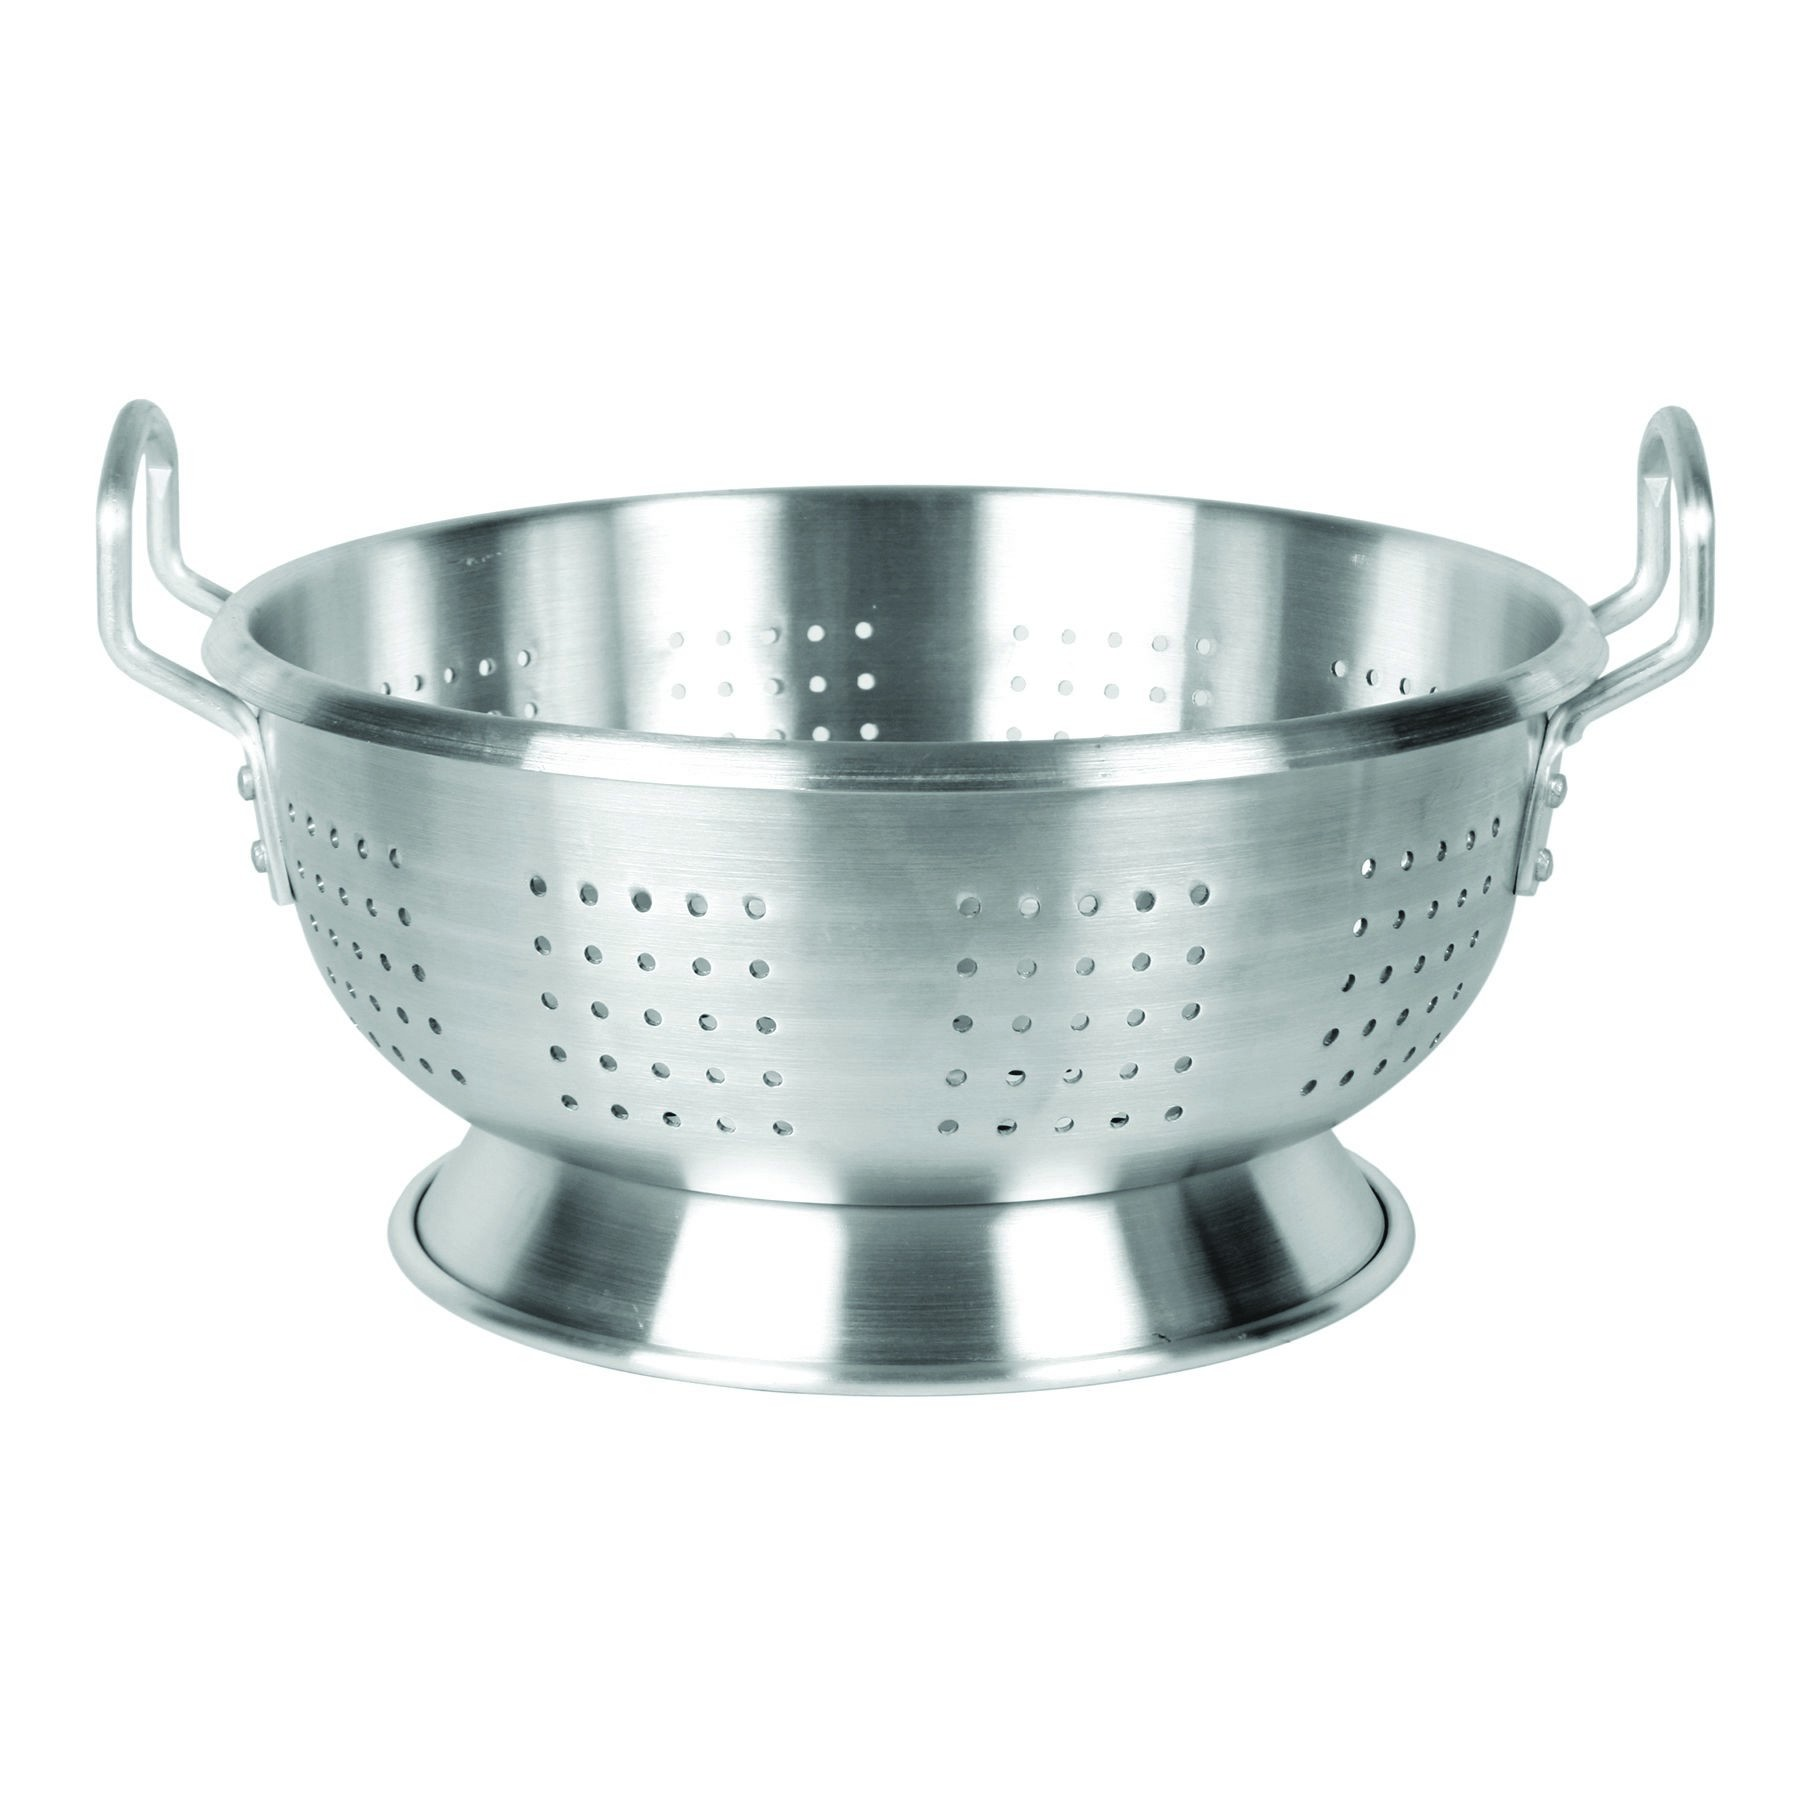 Aluminum Colander With Base And Handle 12 Qt-Heavy Duty (3.0 M/M)